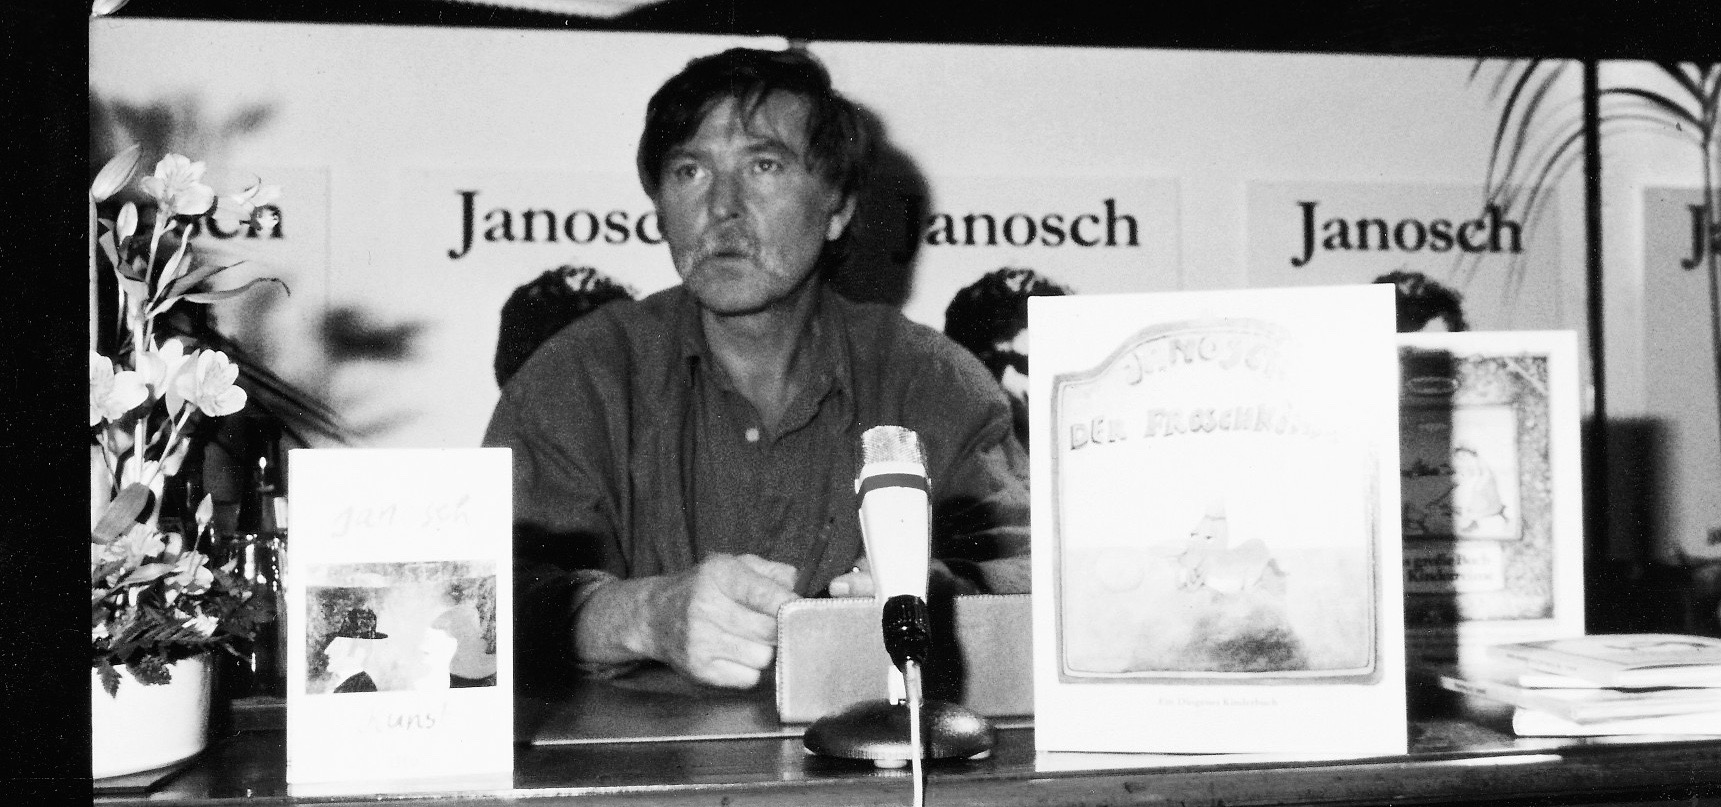 Interview-janosch-grosses foto